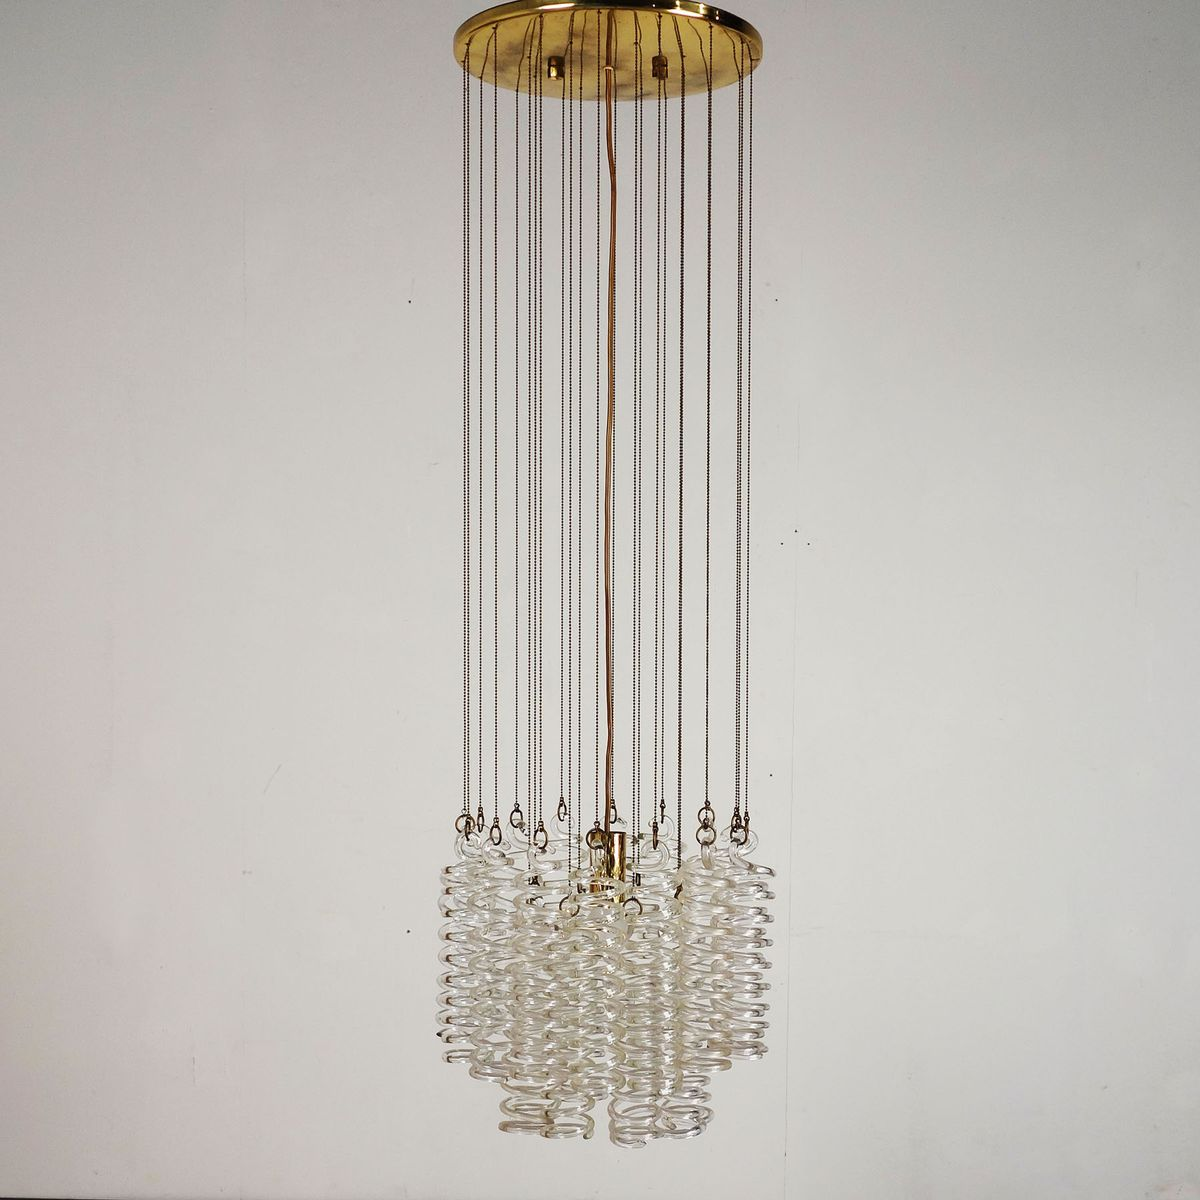 Glass Spiral Chandelier, 1970s for sale at Pamono